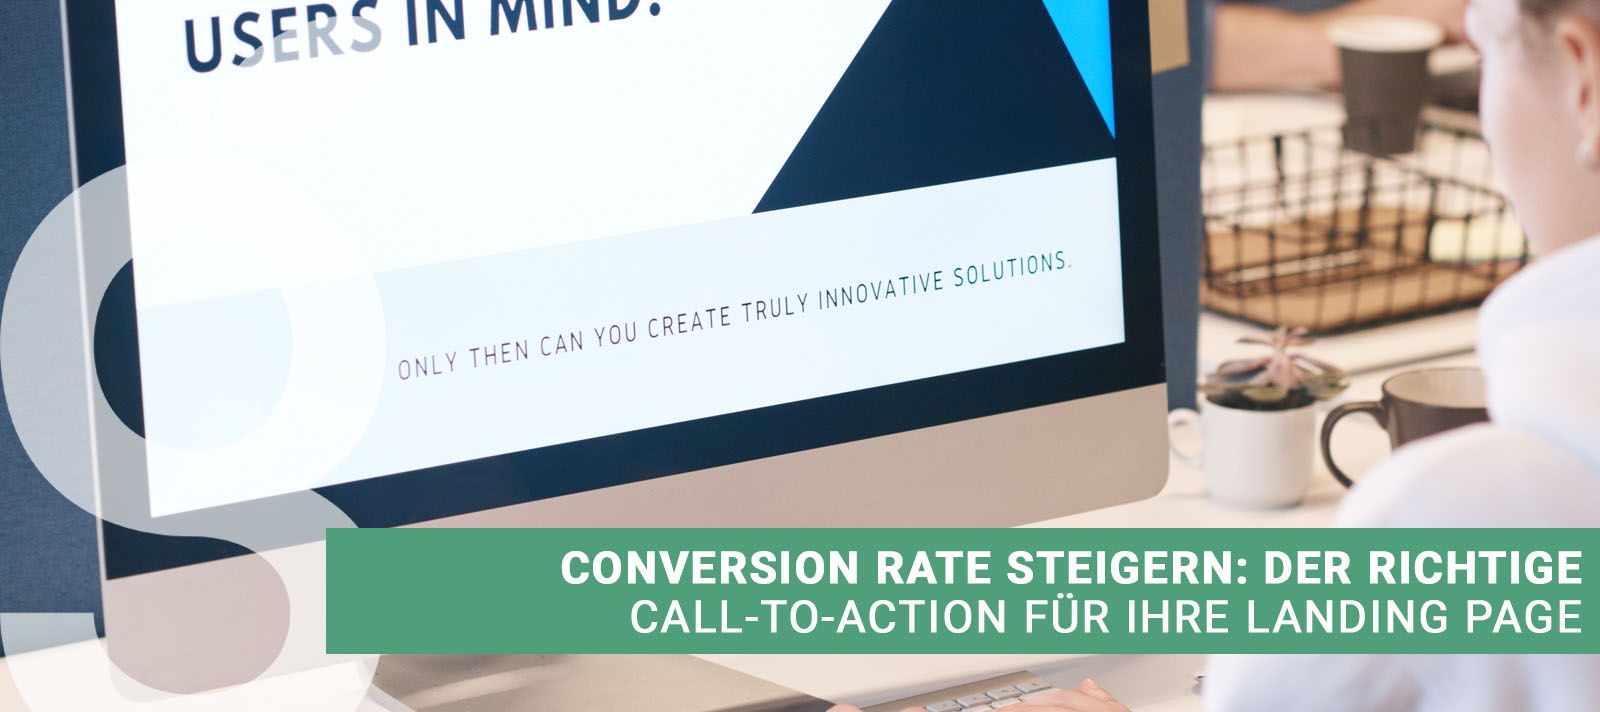 Conversion Rate steigern Thun